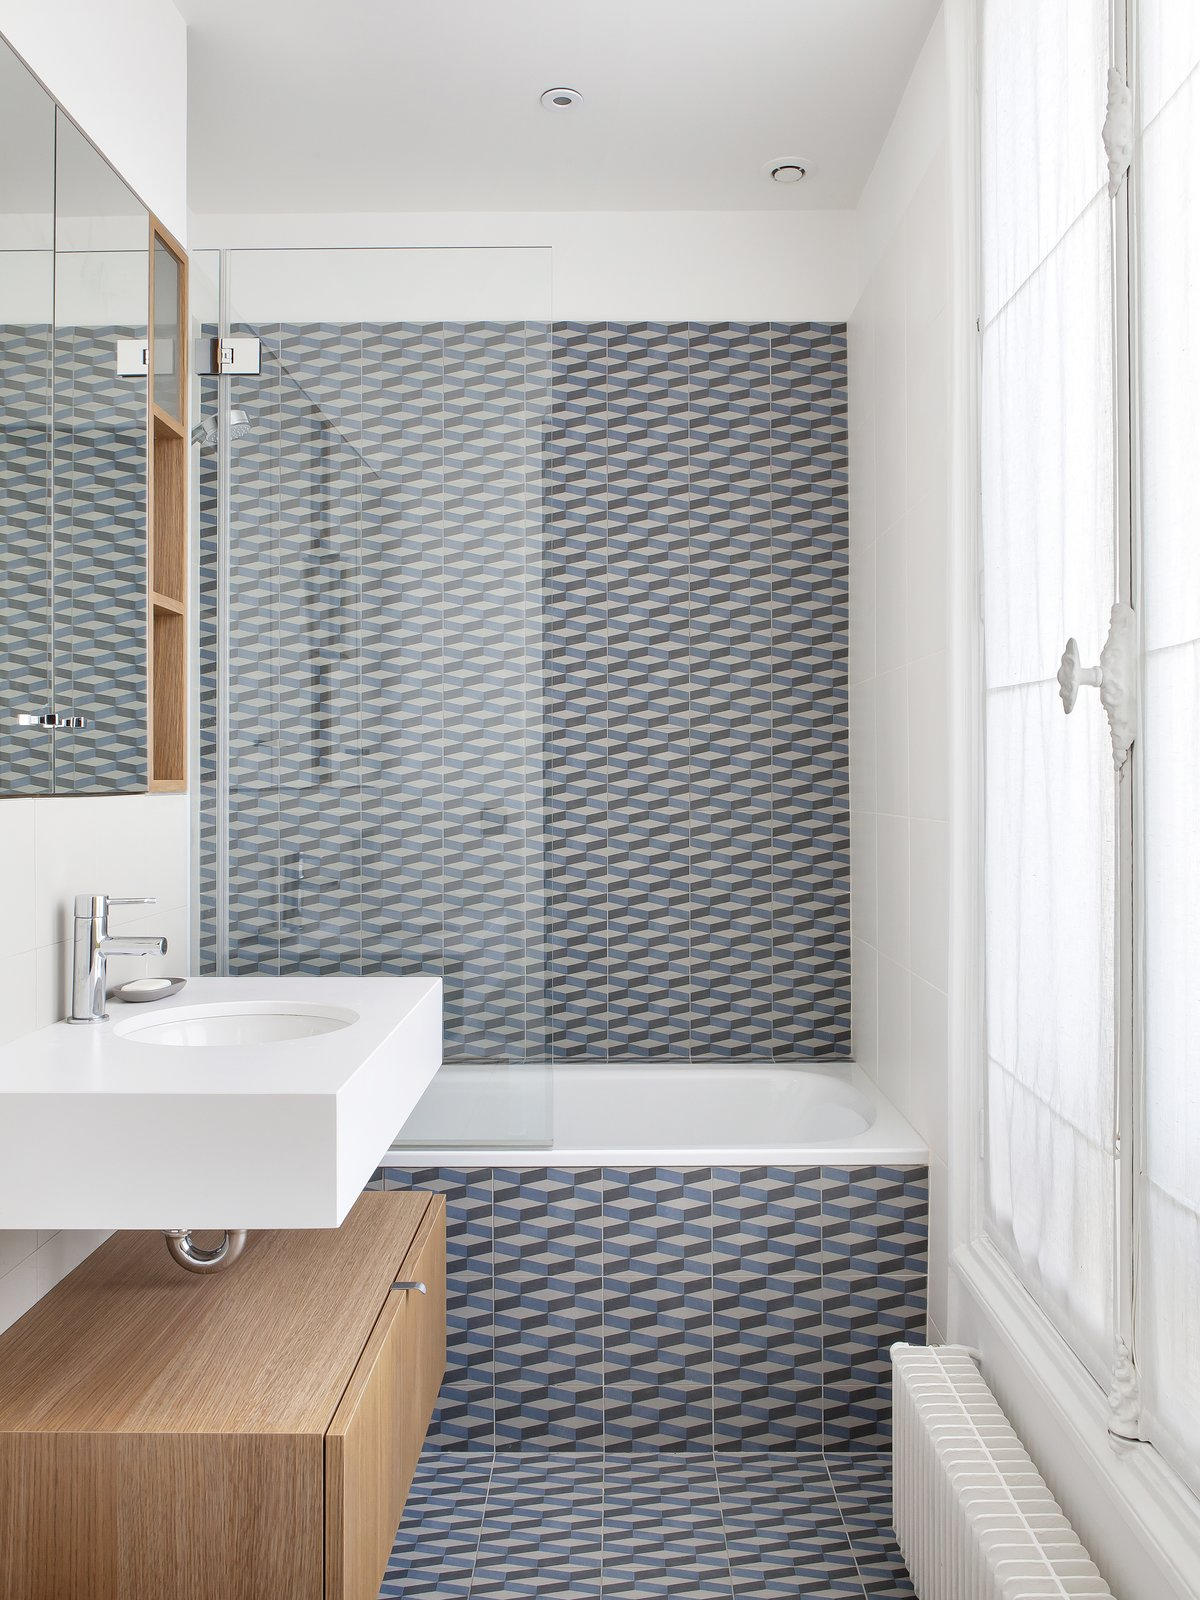 Bath, Soaking, Enclosed, Recessed, Porcelain Tile, Wall Mount, Alcove, and Undermount The children's bathroom features Mutina's azulej cubo grigio floor and wall tiling.  Best Bath Enclosed Wall Mount Recessed Photos from A Parisian Abode Is Reborn With a Fresh, Unexpected Color Palette